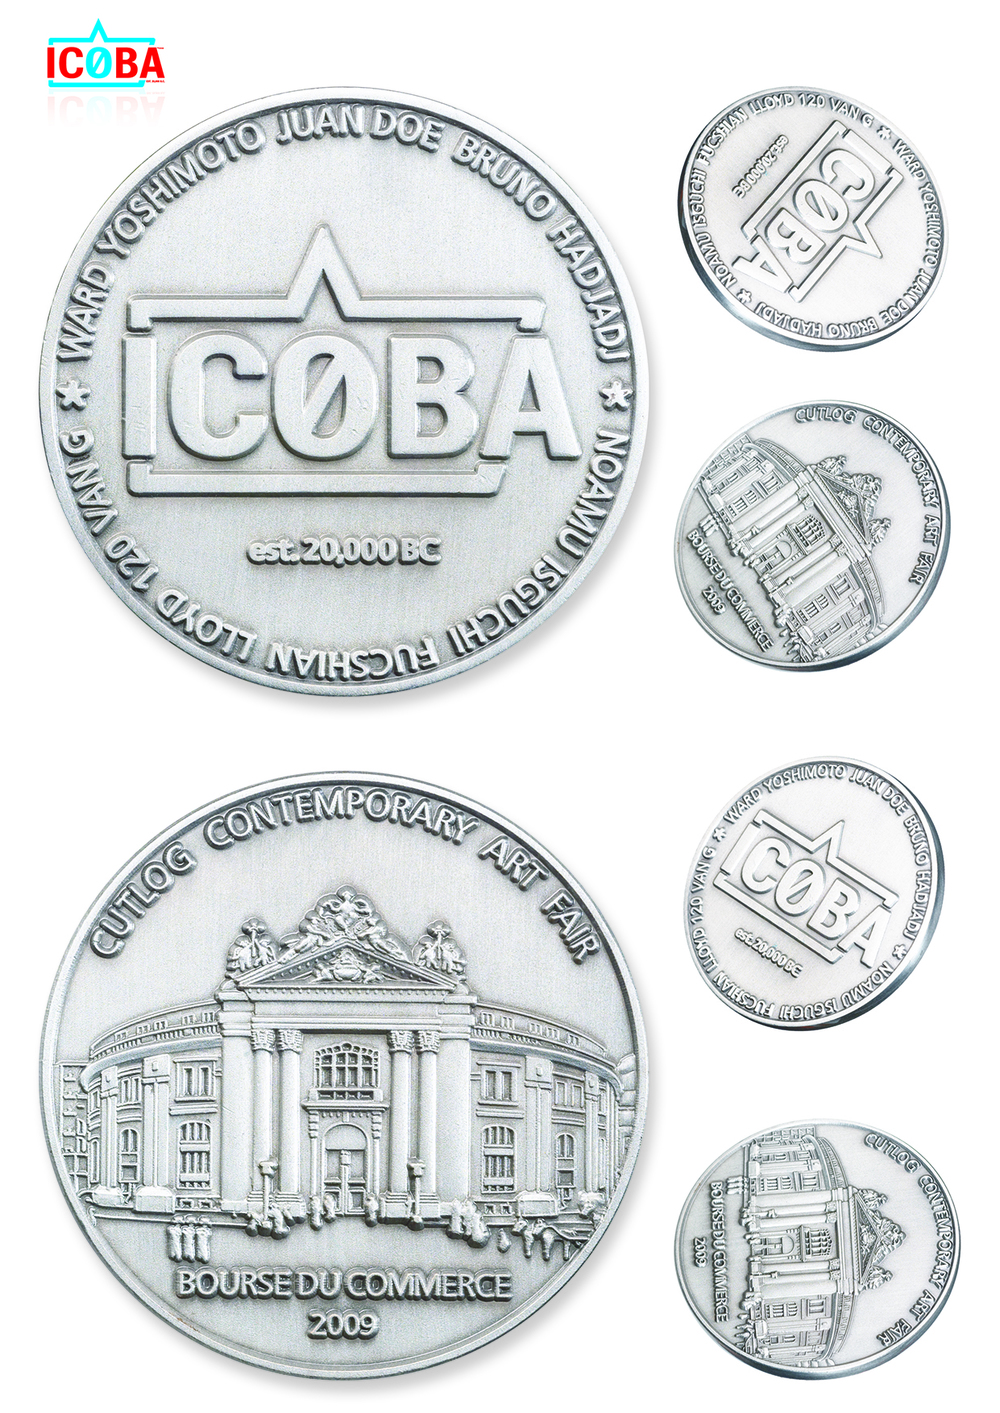 ICOBA_Catalogue_2010.jpg